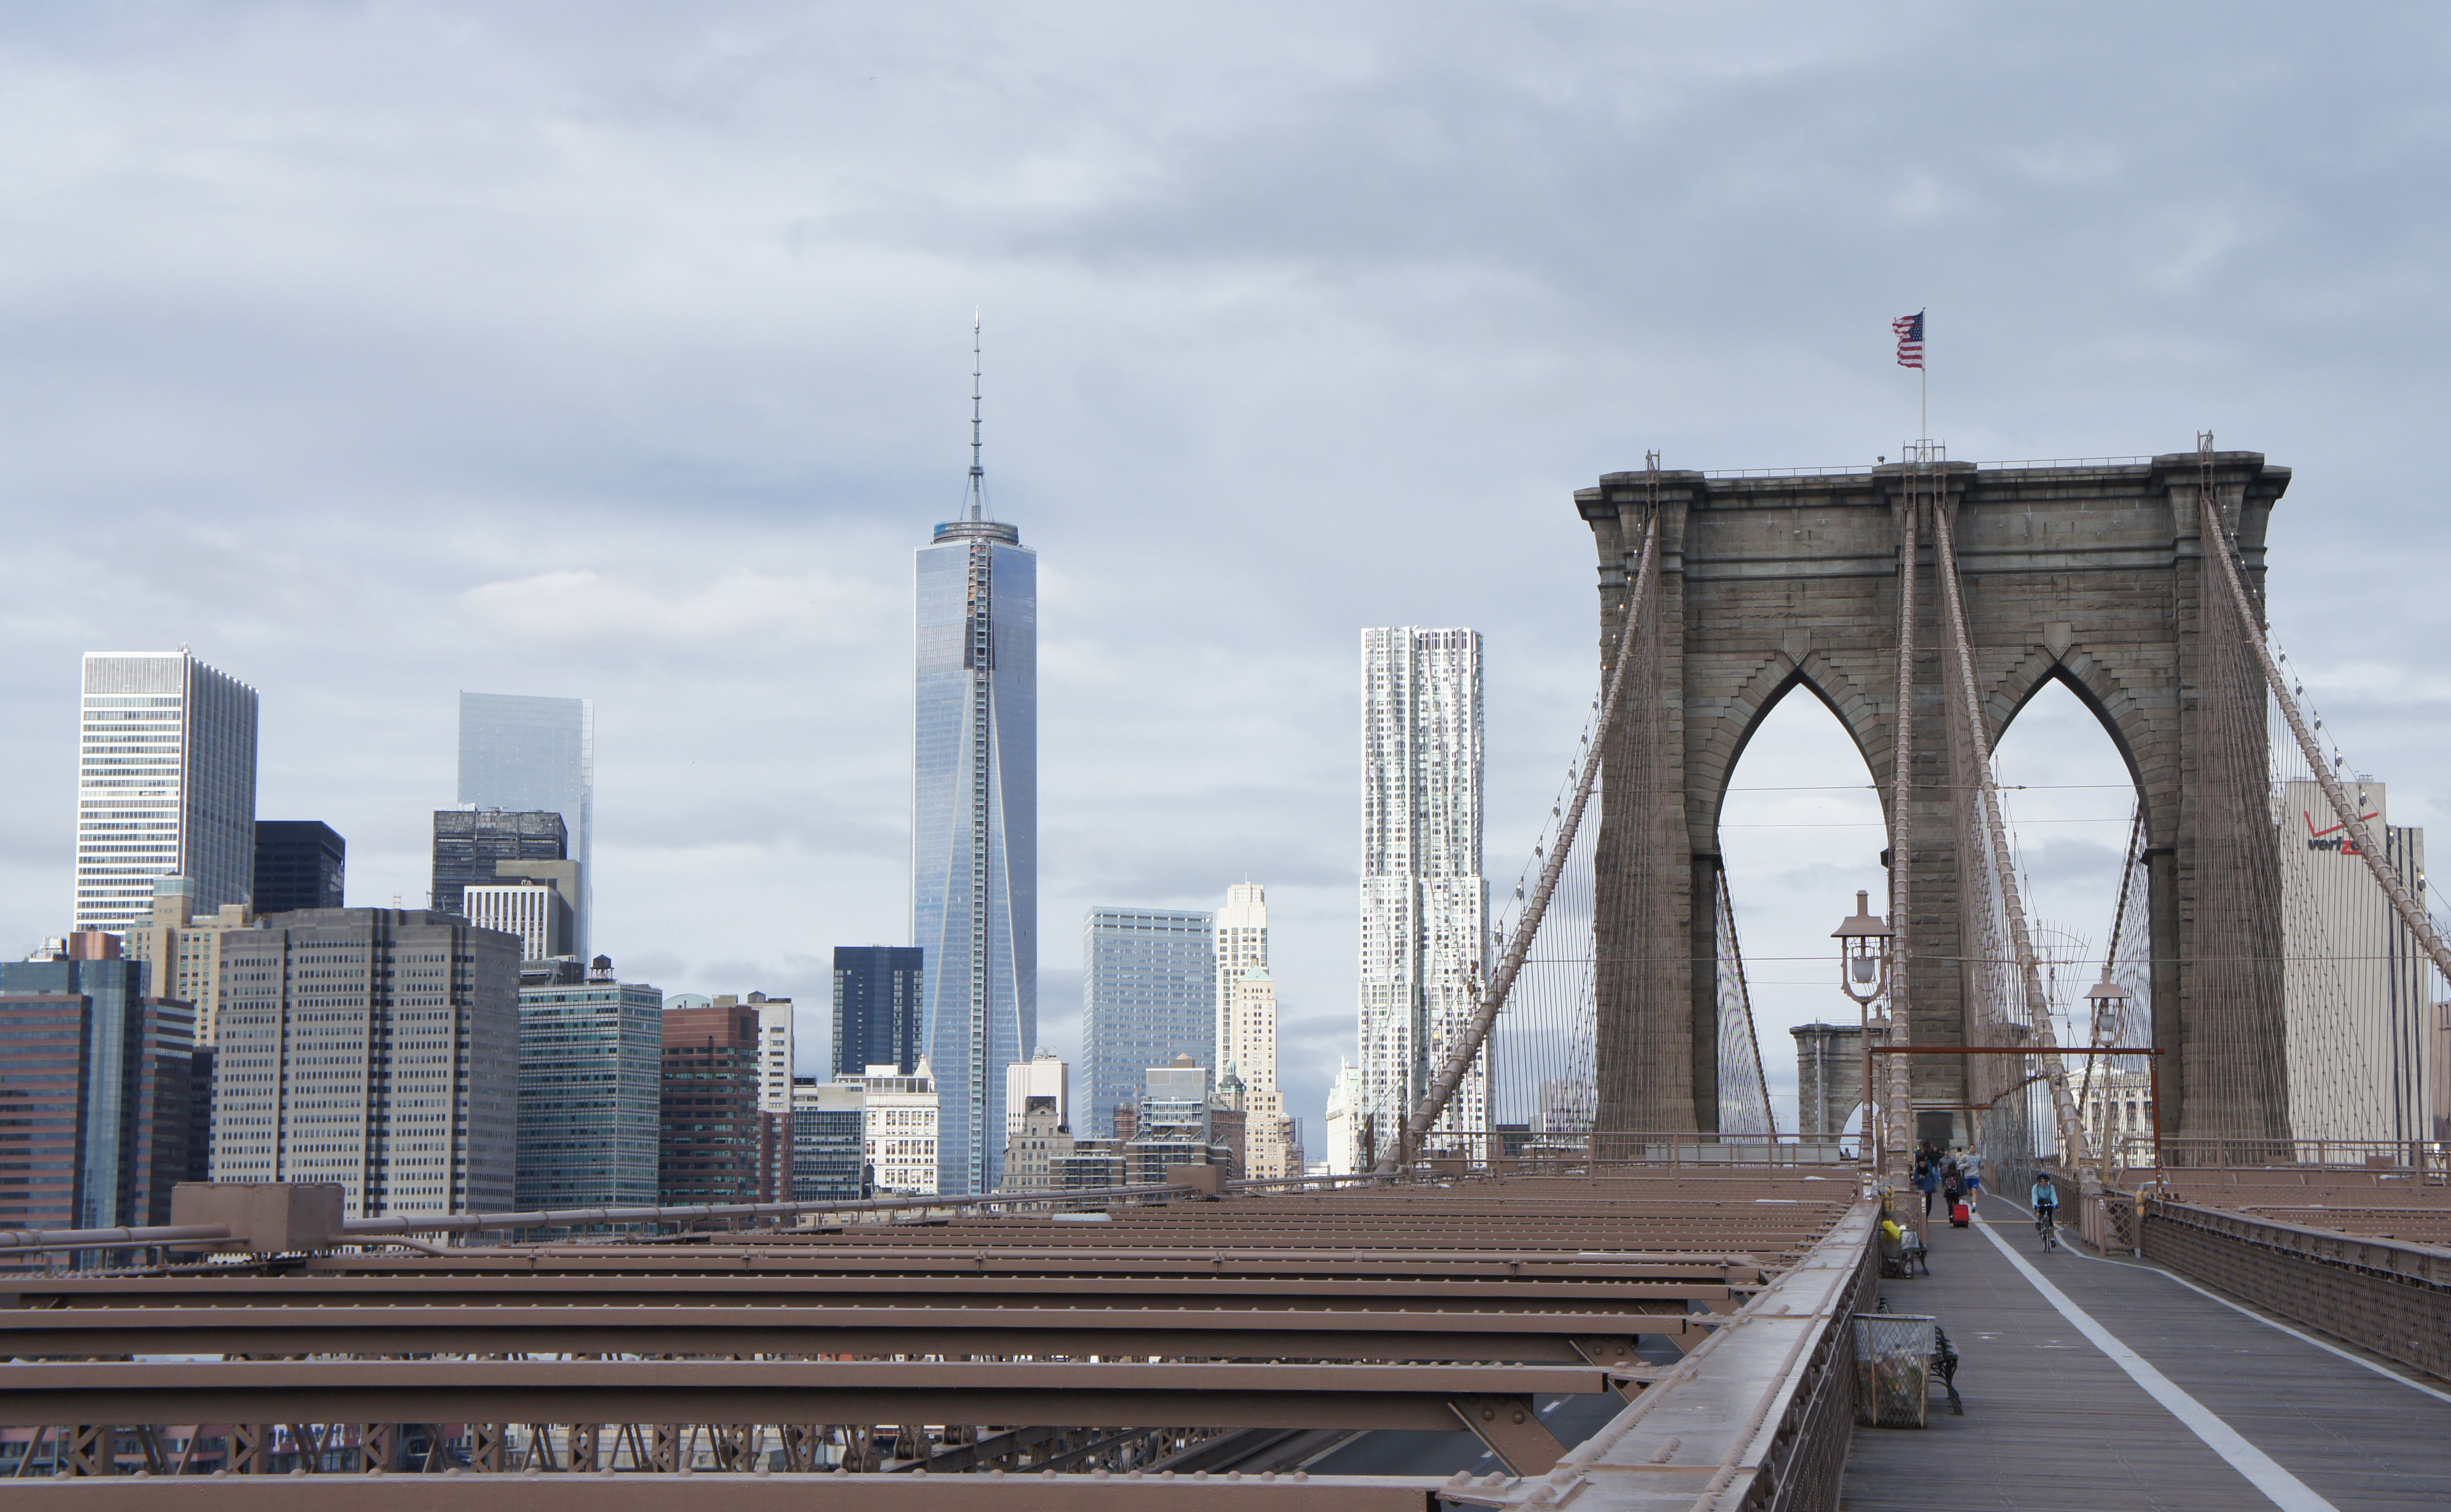 View of the Freedom Tower from the walkway on the Brooklyn Bridge in New York City